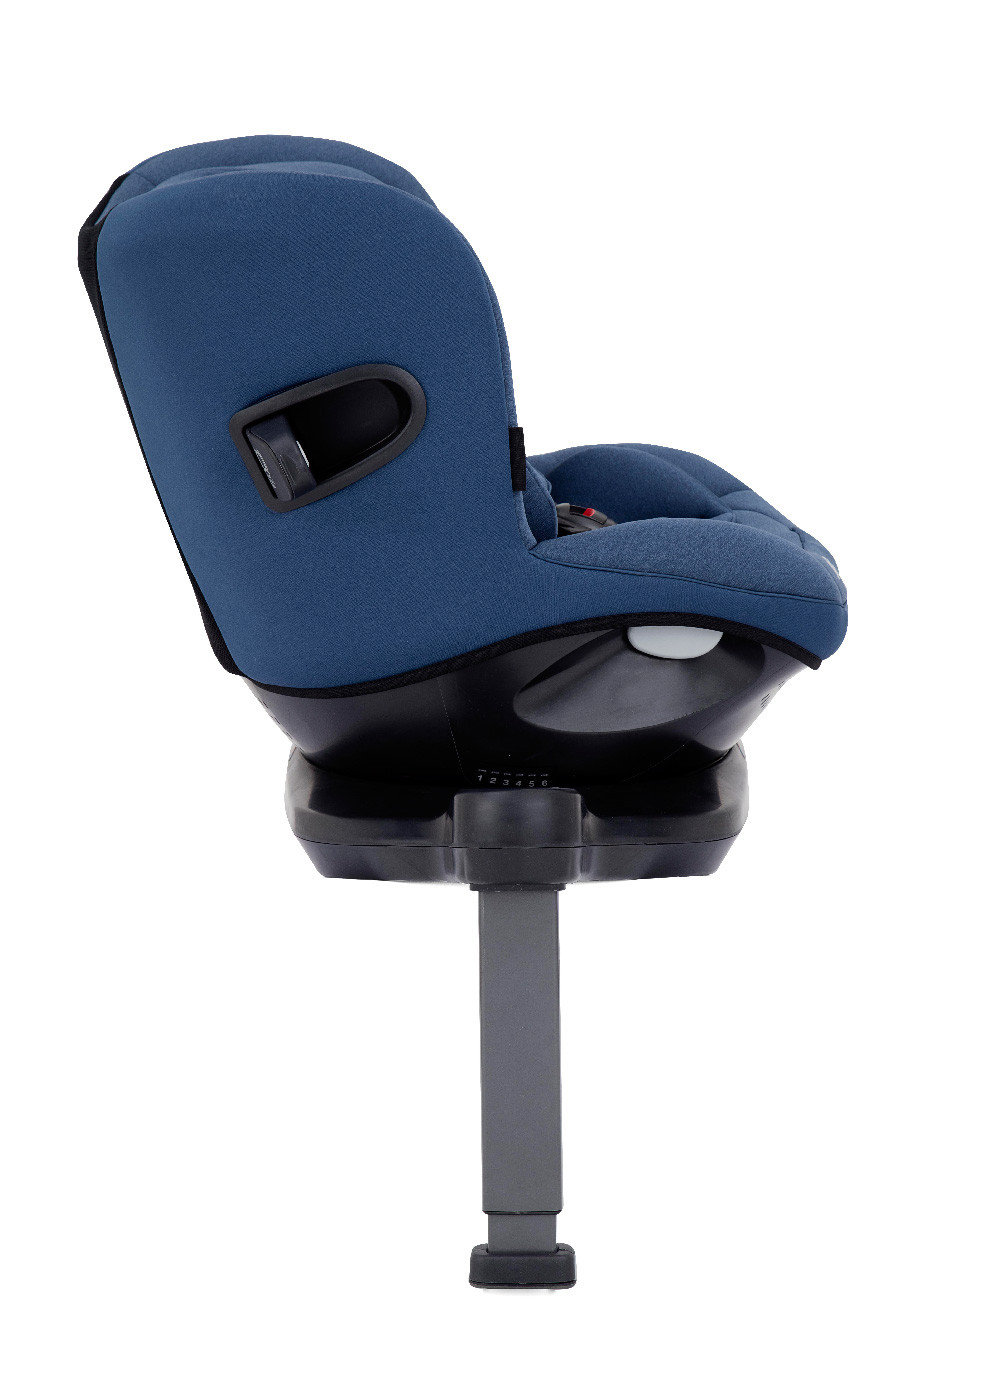 Joie i Spin 360 Car Seat